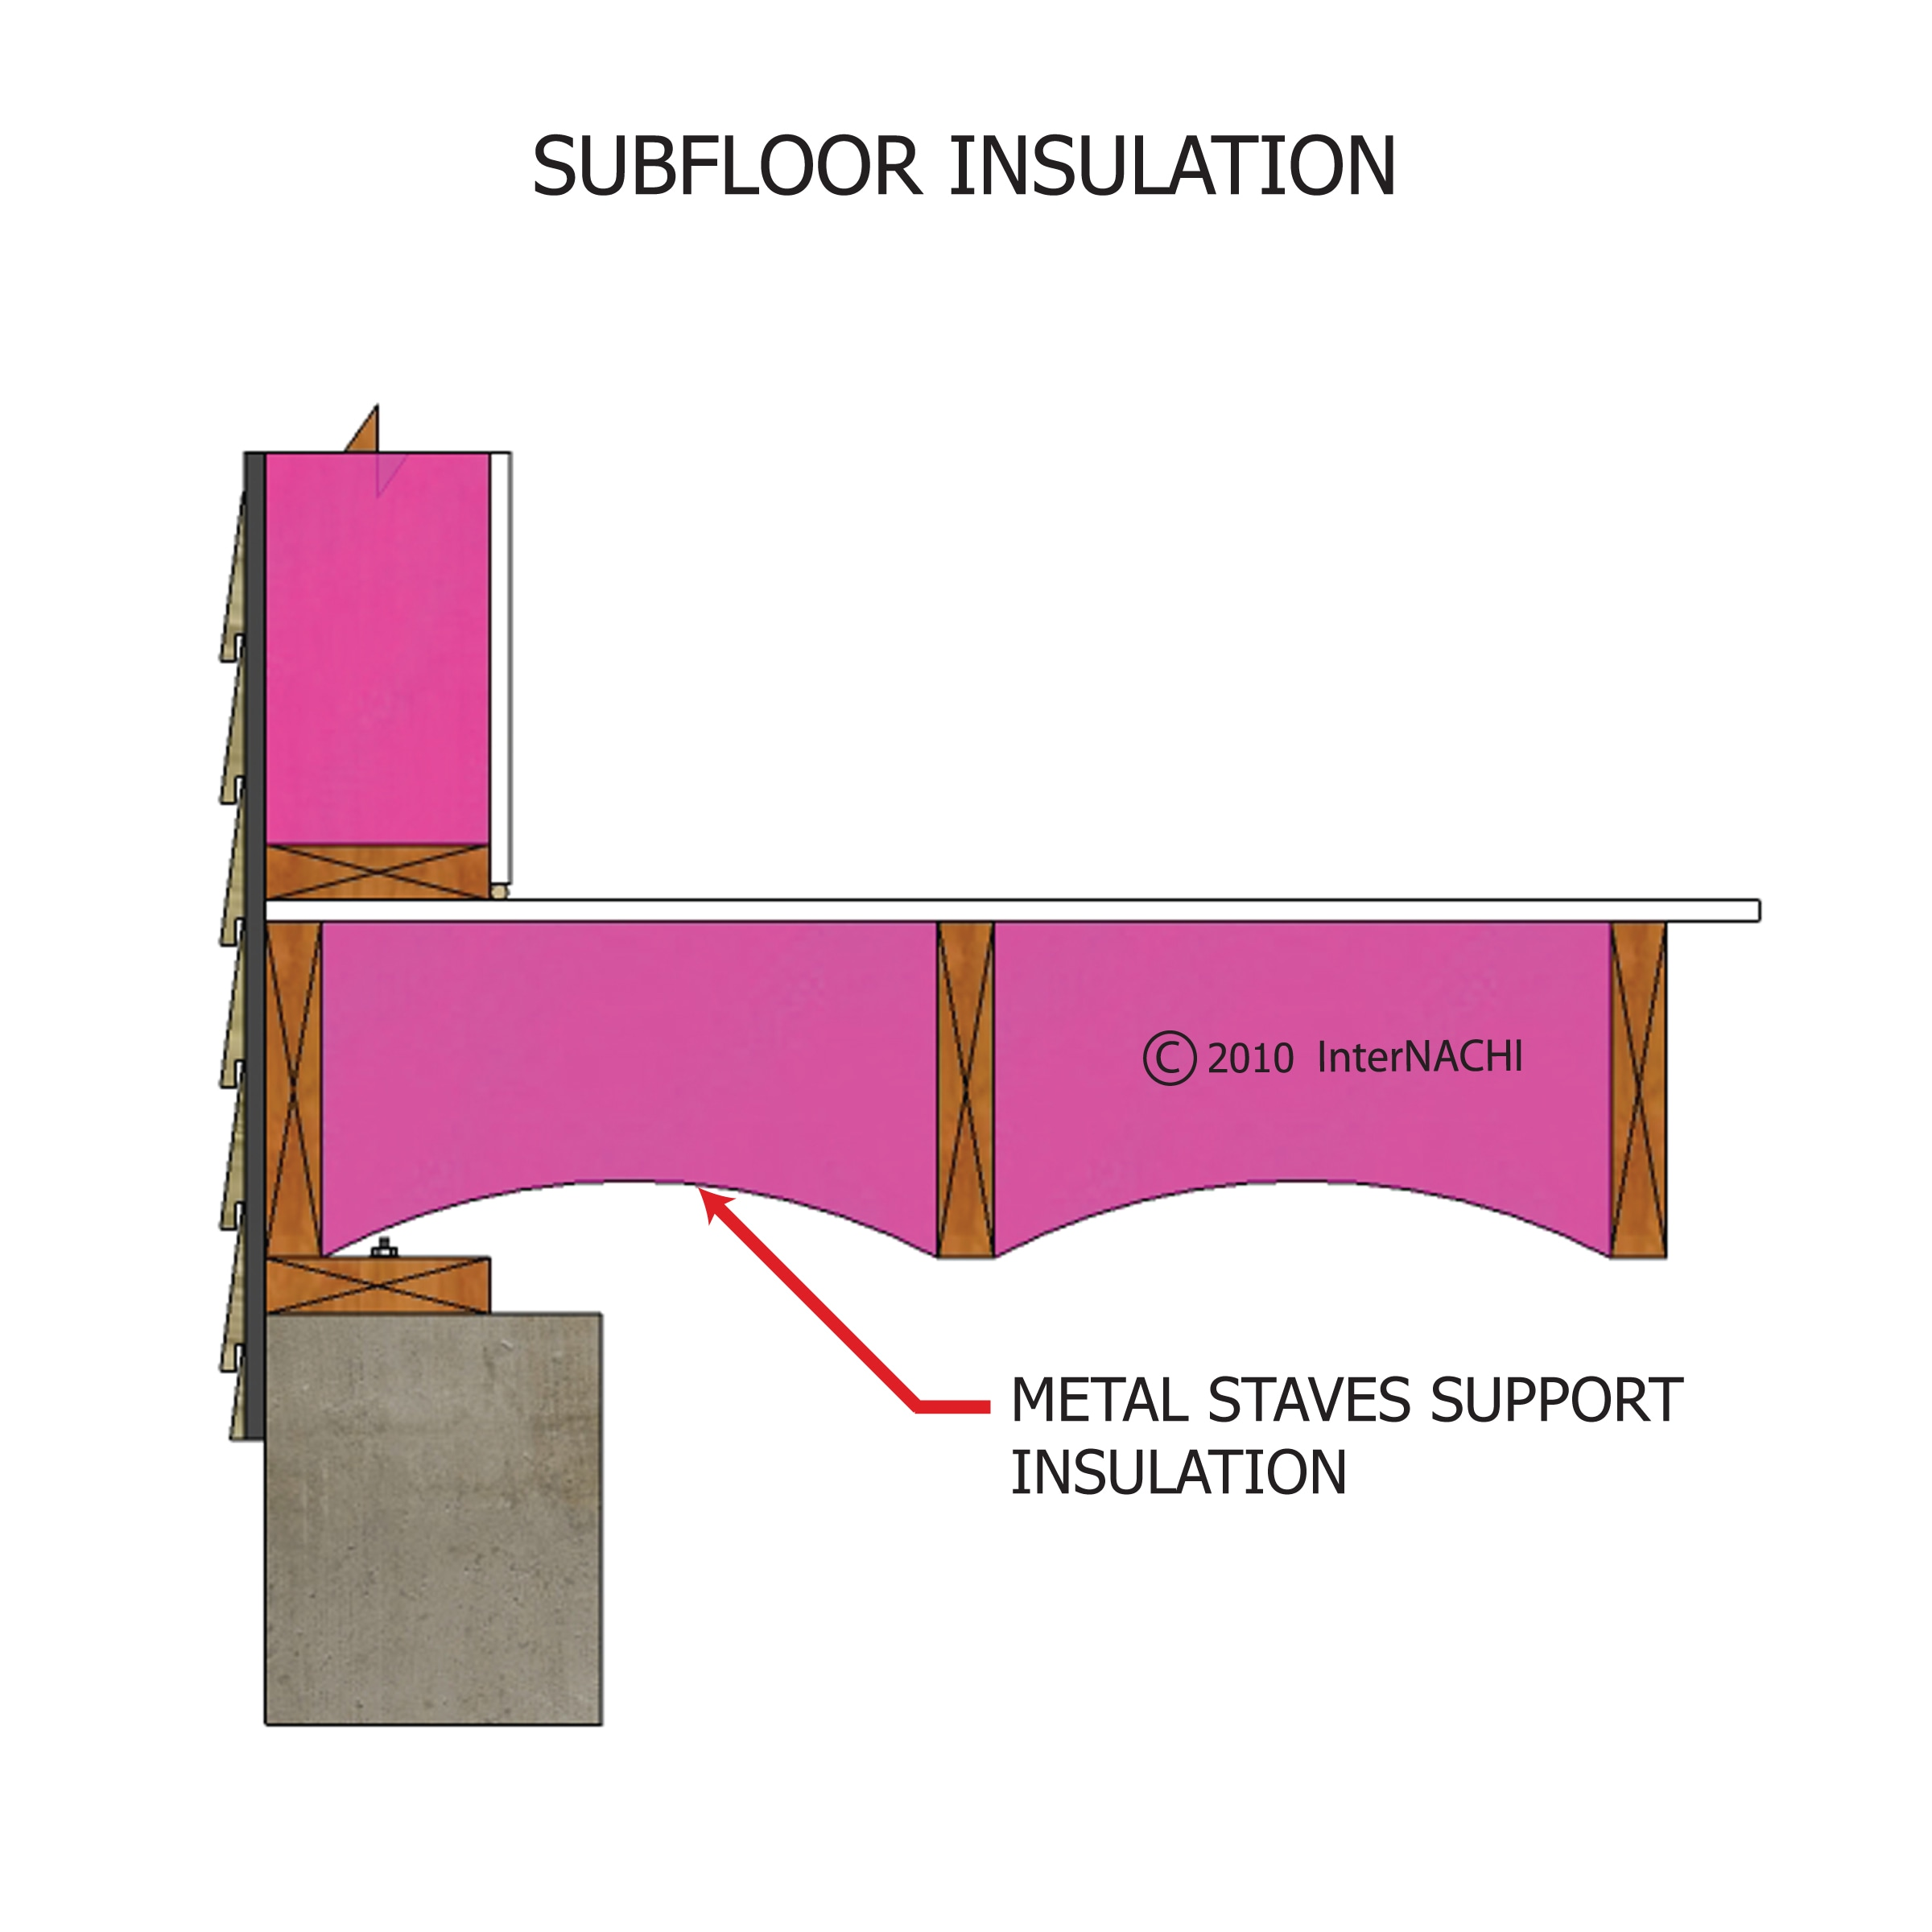 Subfloor insulation.